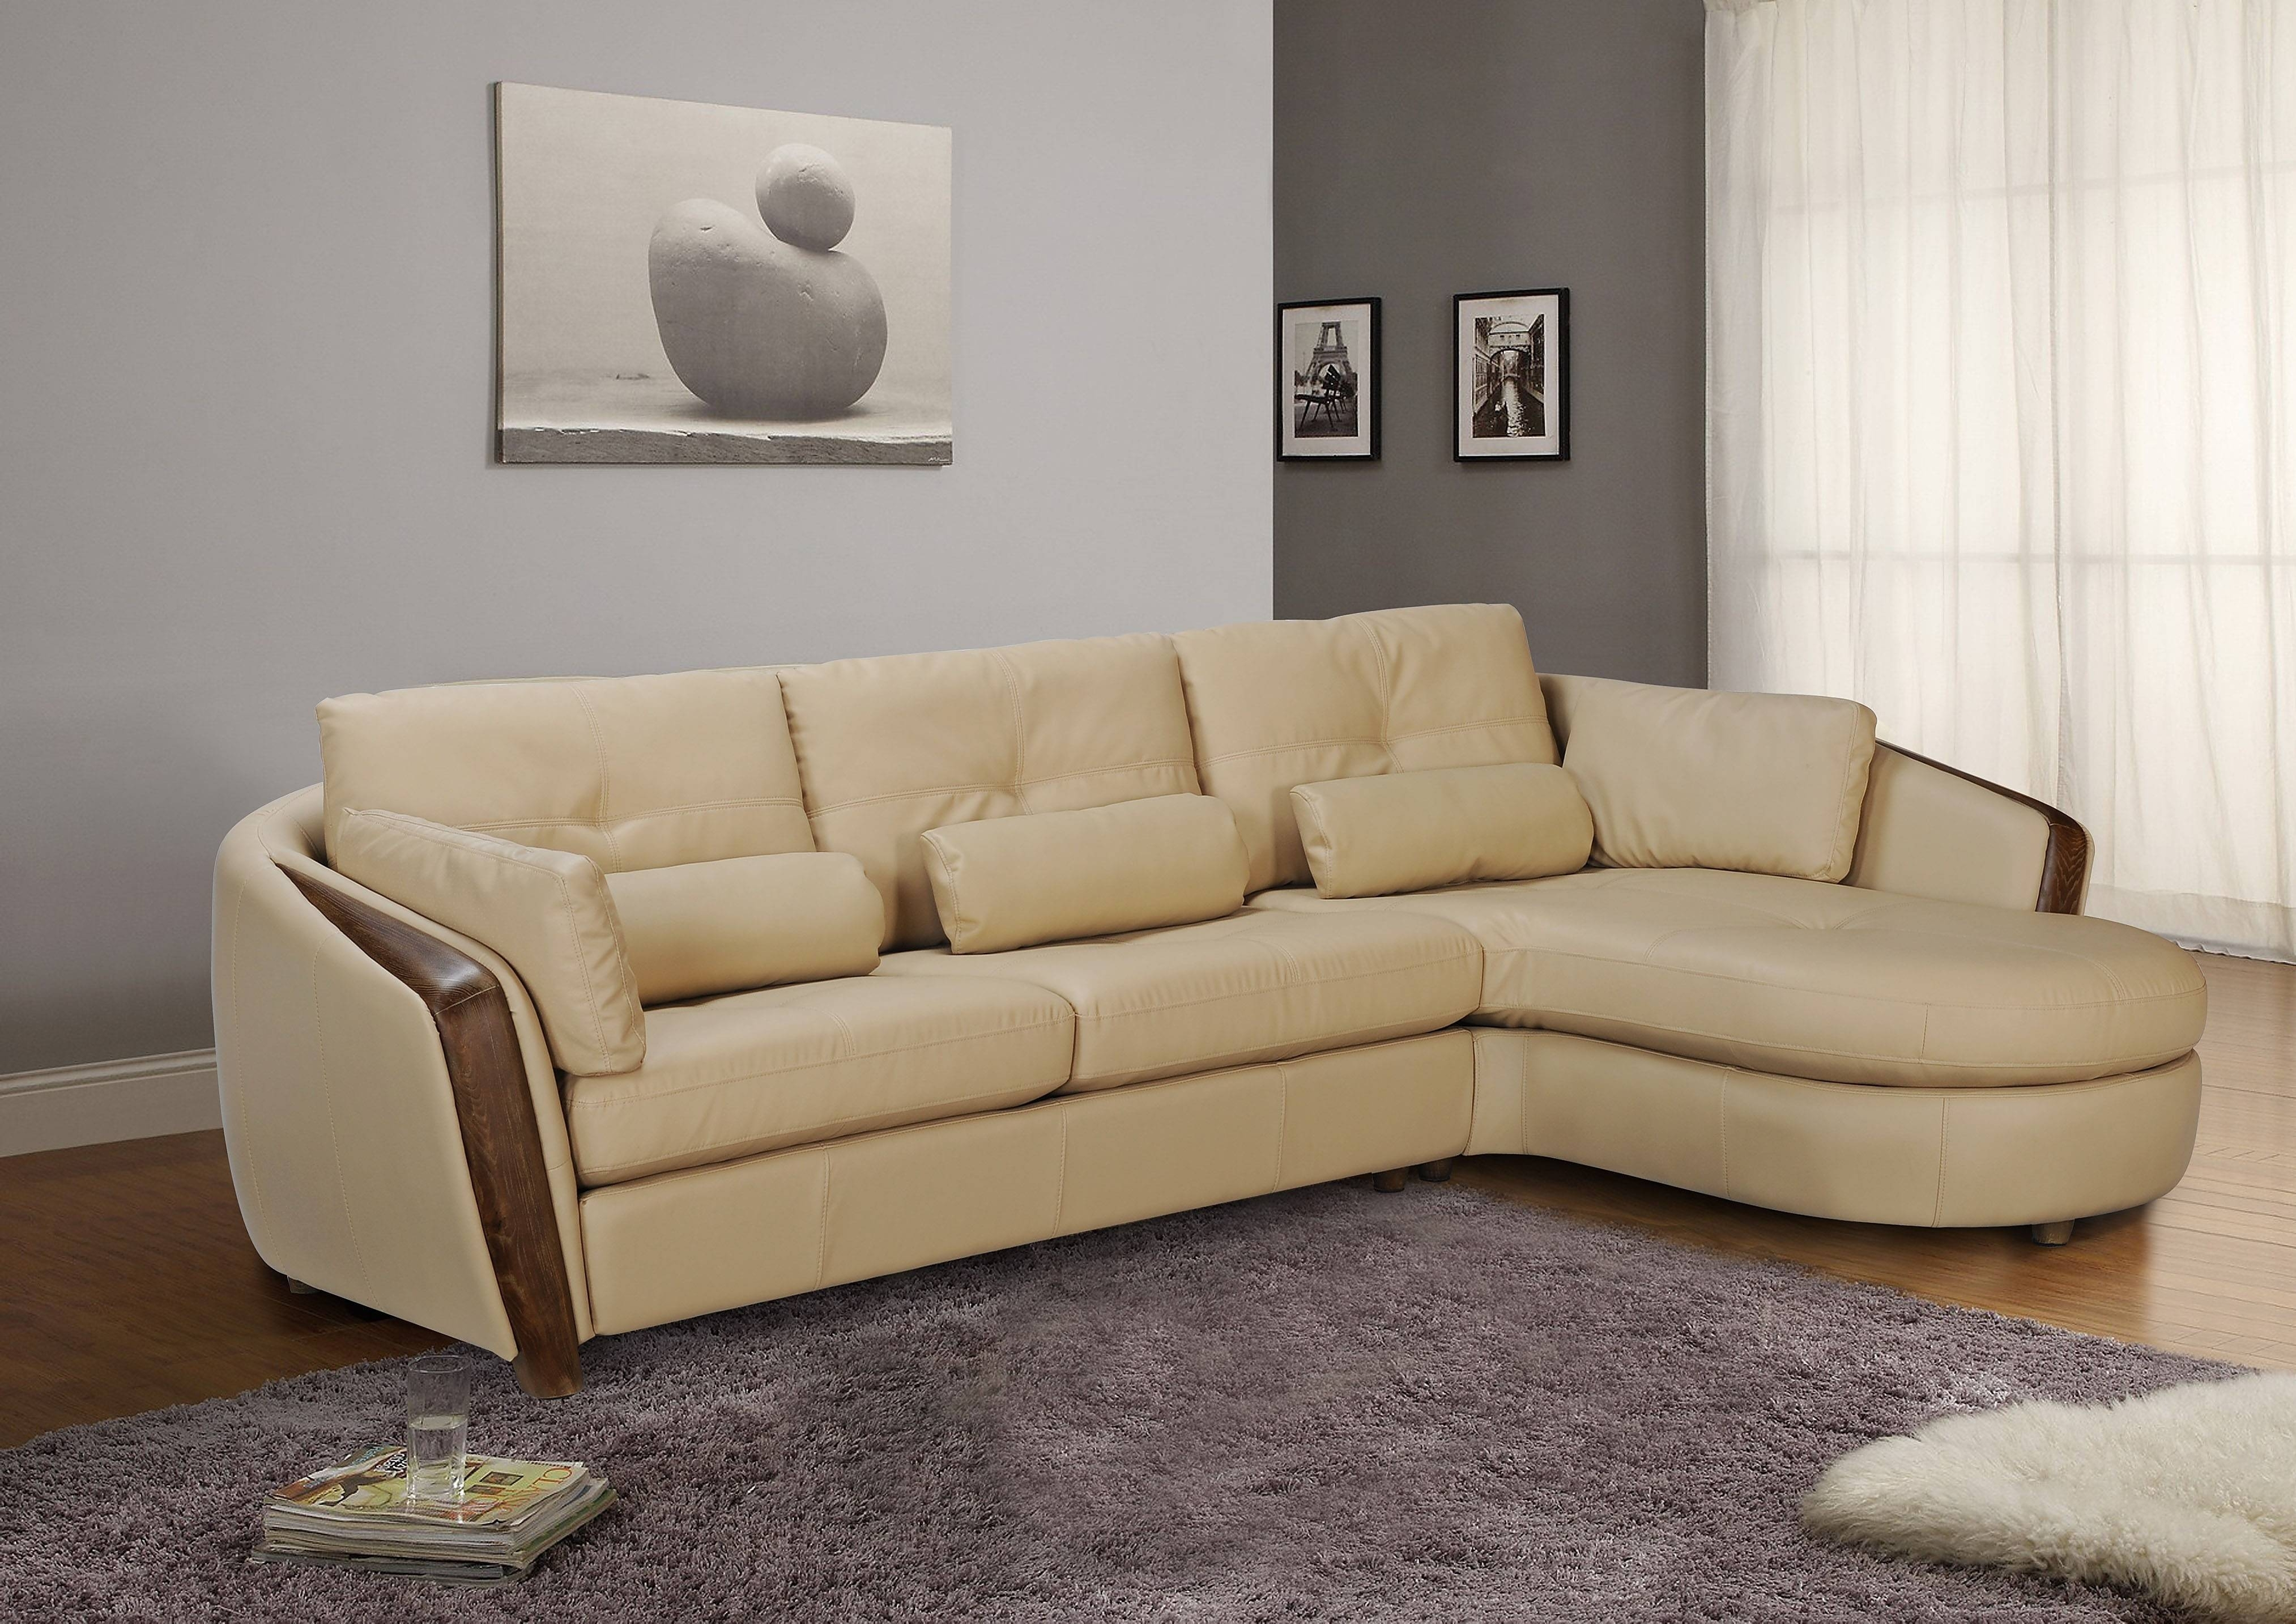 Taupe Bonded Leather Sectional Sofa With Ash Wood Accent Baltimore Intended For Ontario Sectional Sofas (Image 10 of 10)